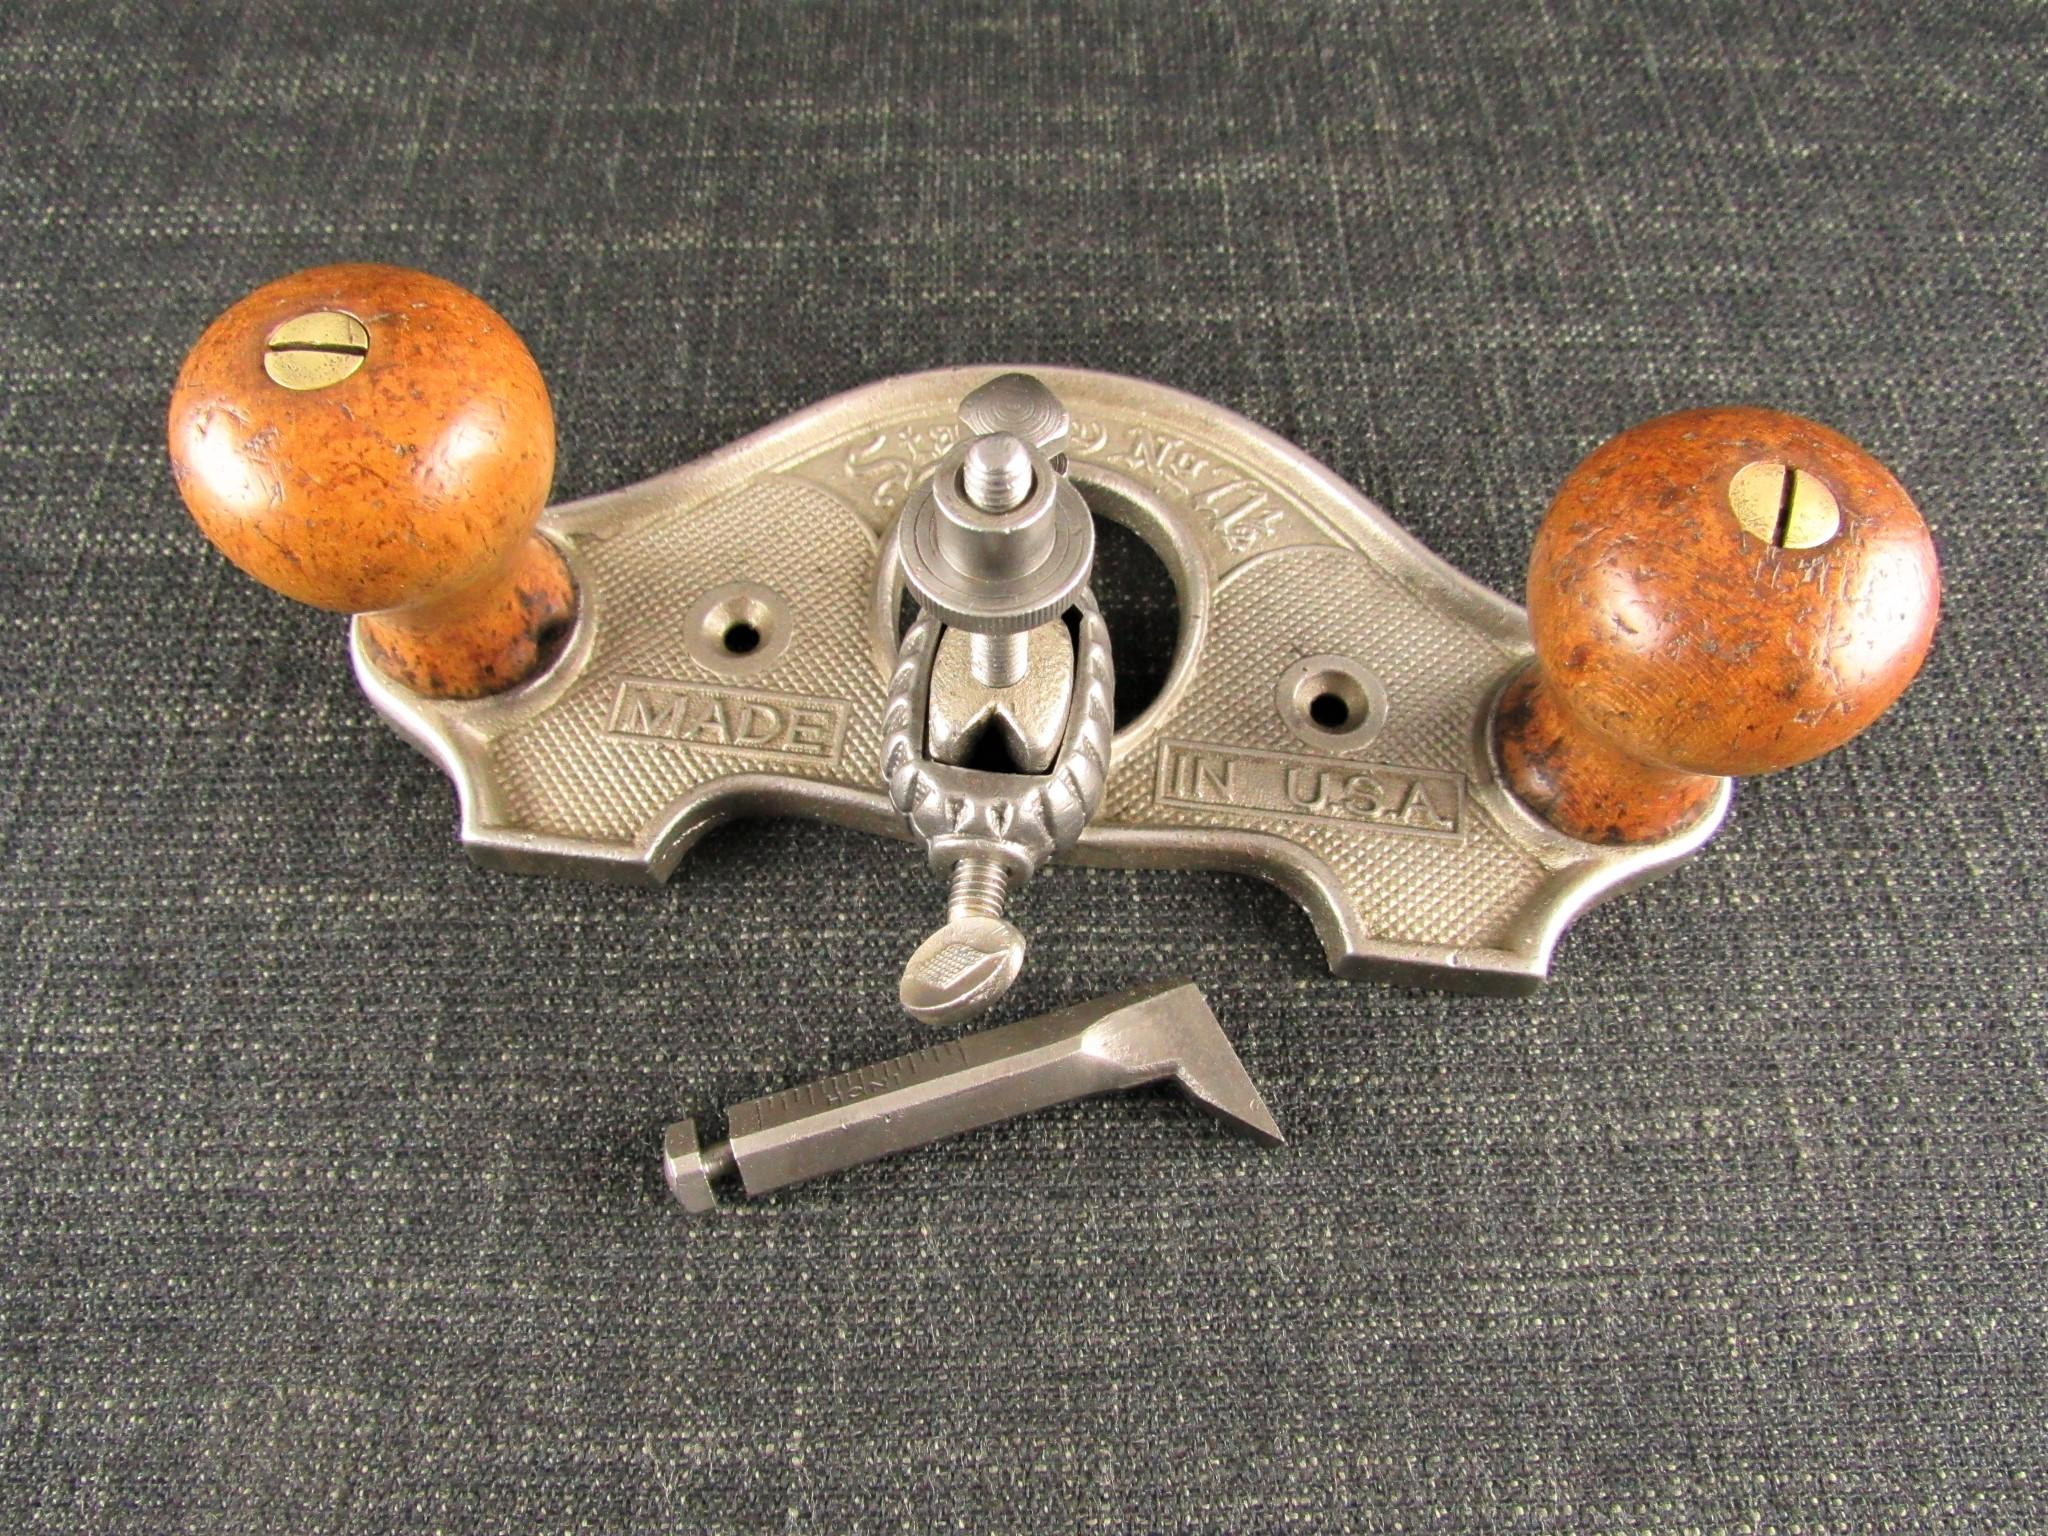 American STANLEY 71 1/2 Router Plane